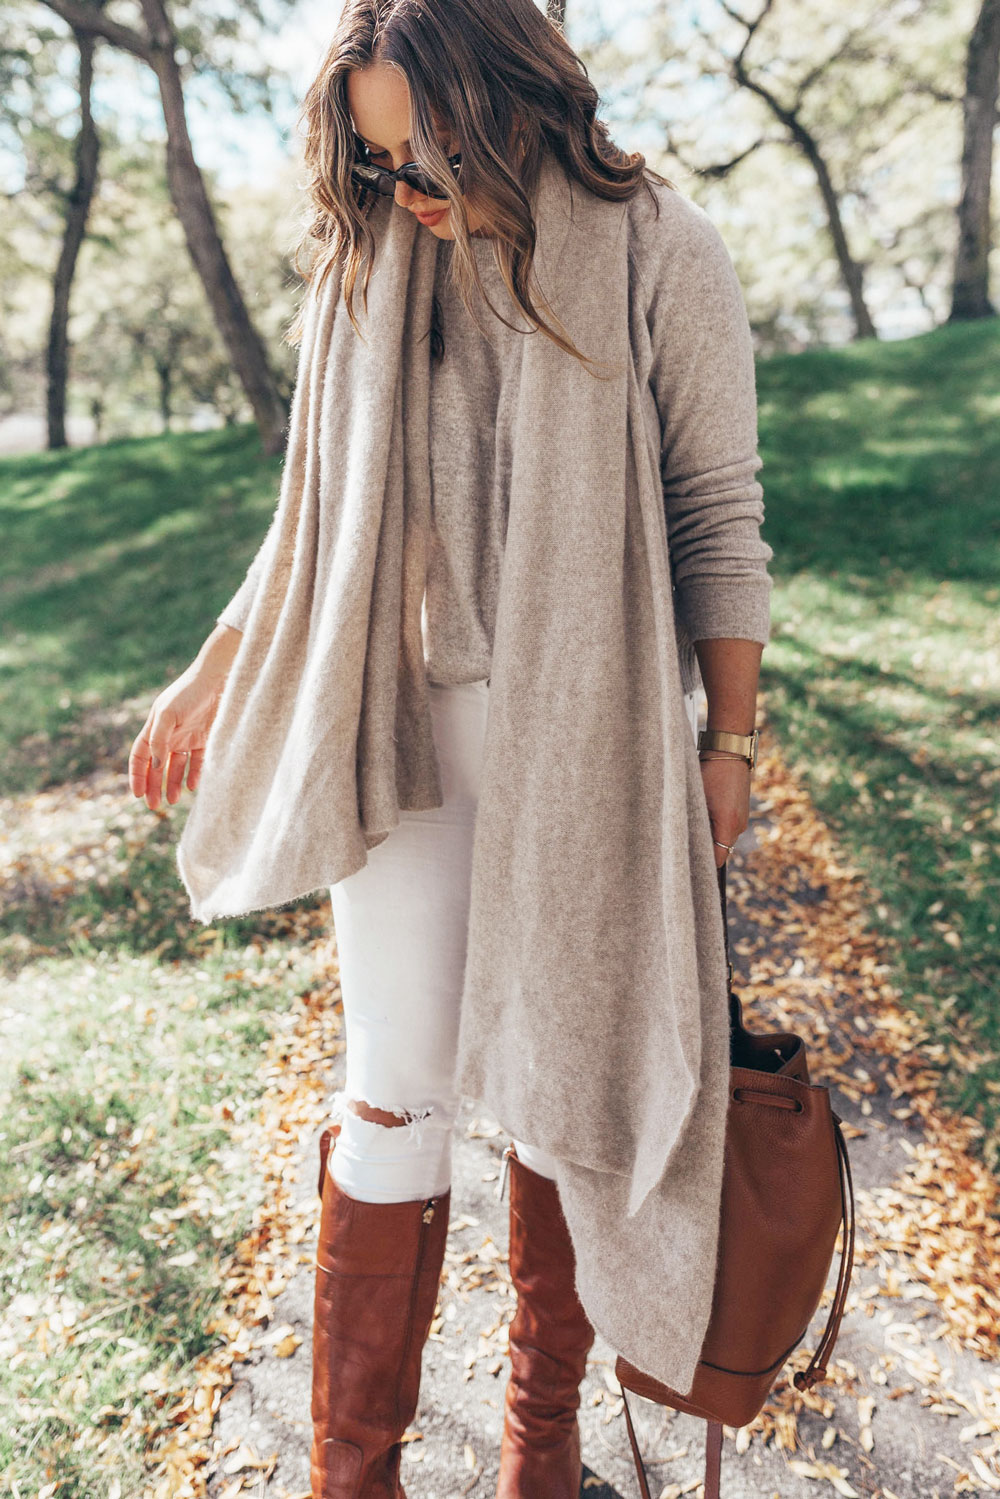 Cashmere sweater outfit ideas